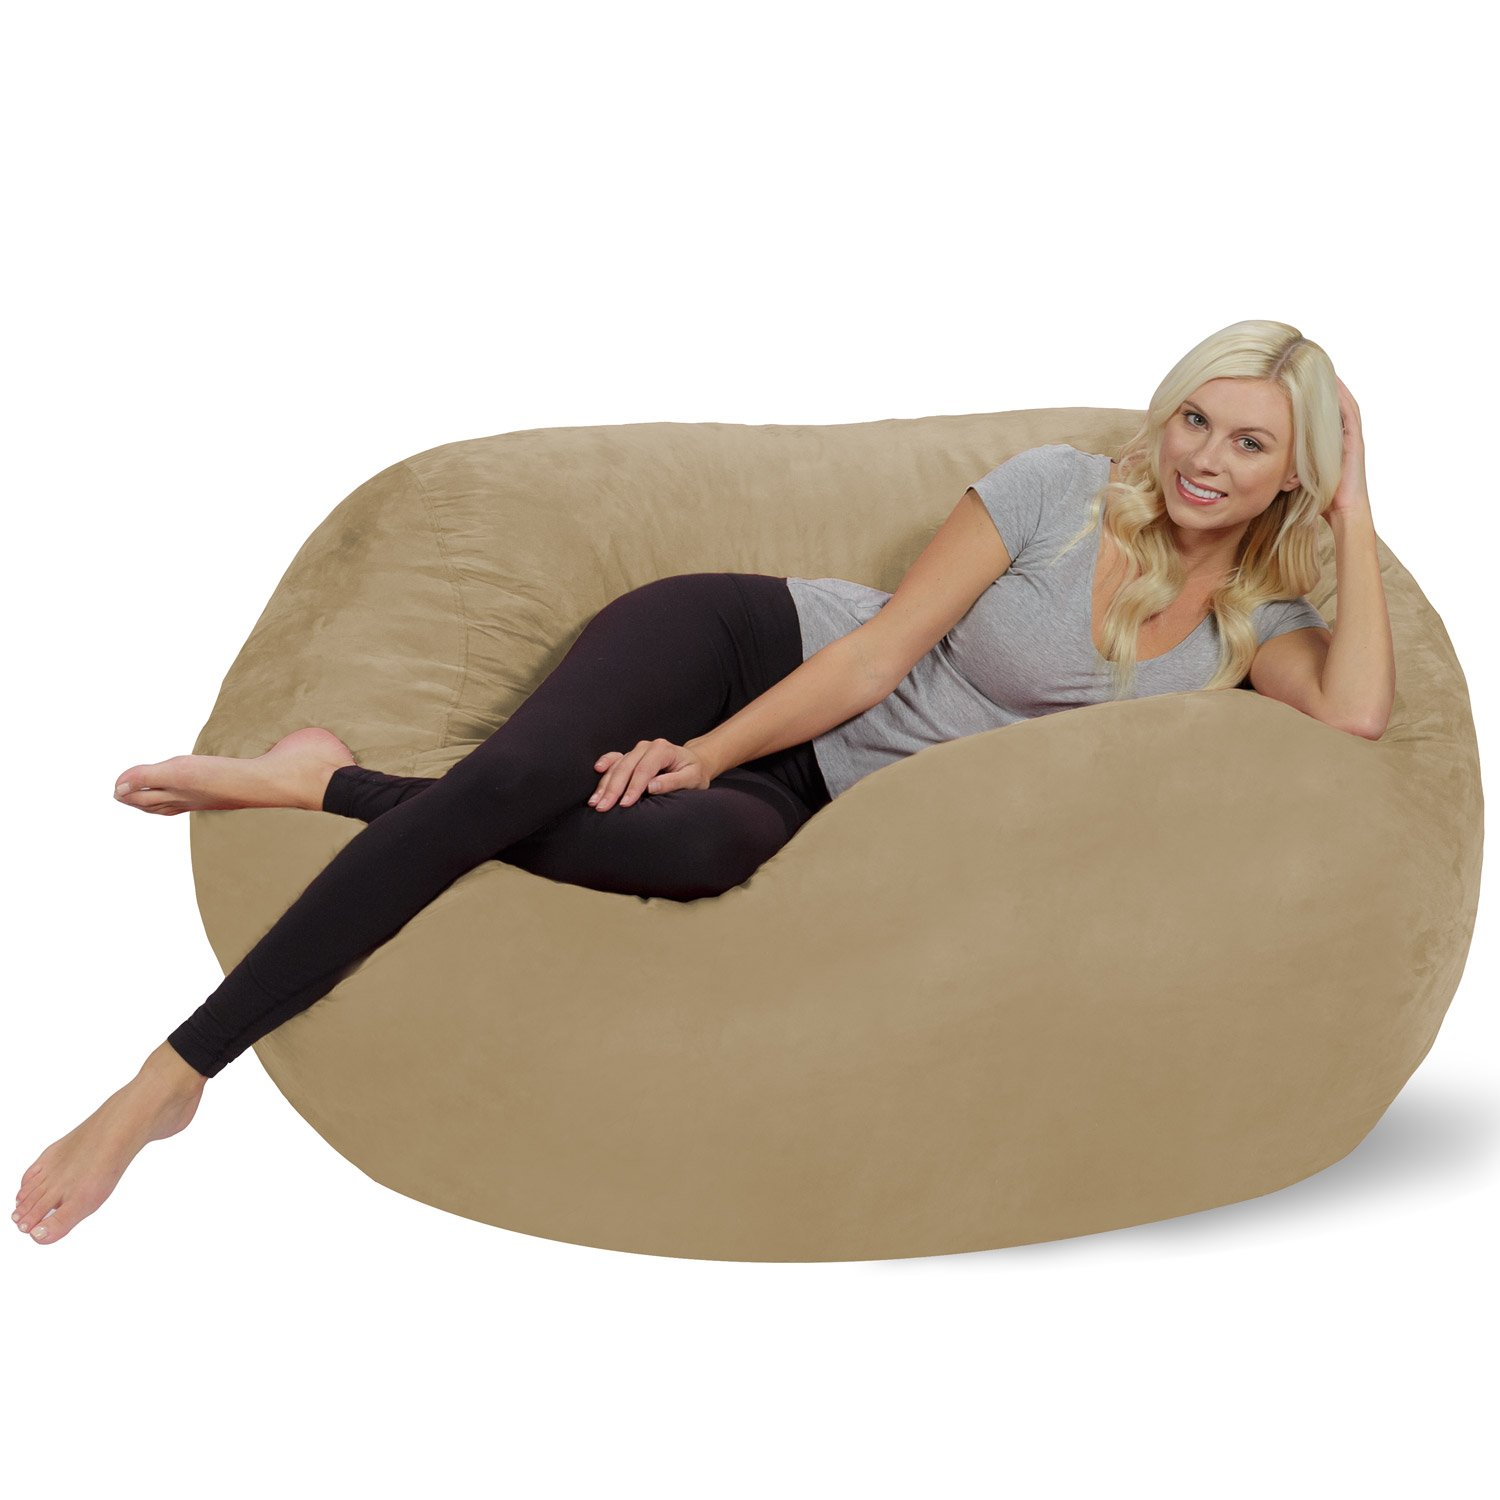 Chill Sack Bean Bag Chair: Huge 5' Memory Foam Furniture Bag and Large Lounger - Big Sofa with Soft Micro Fiber Cover - Black GT Ventures -- DROPSHIP AMZ-5LG-MS01